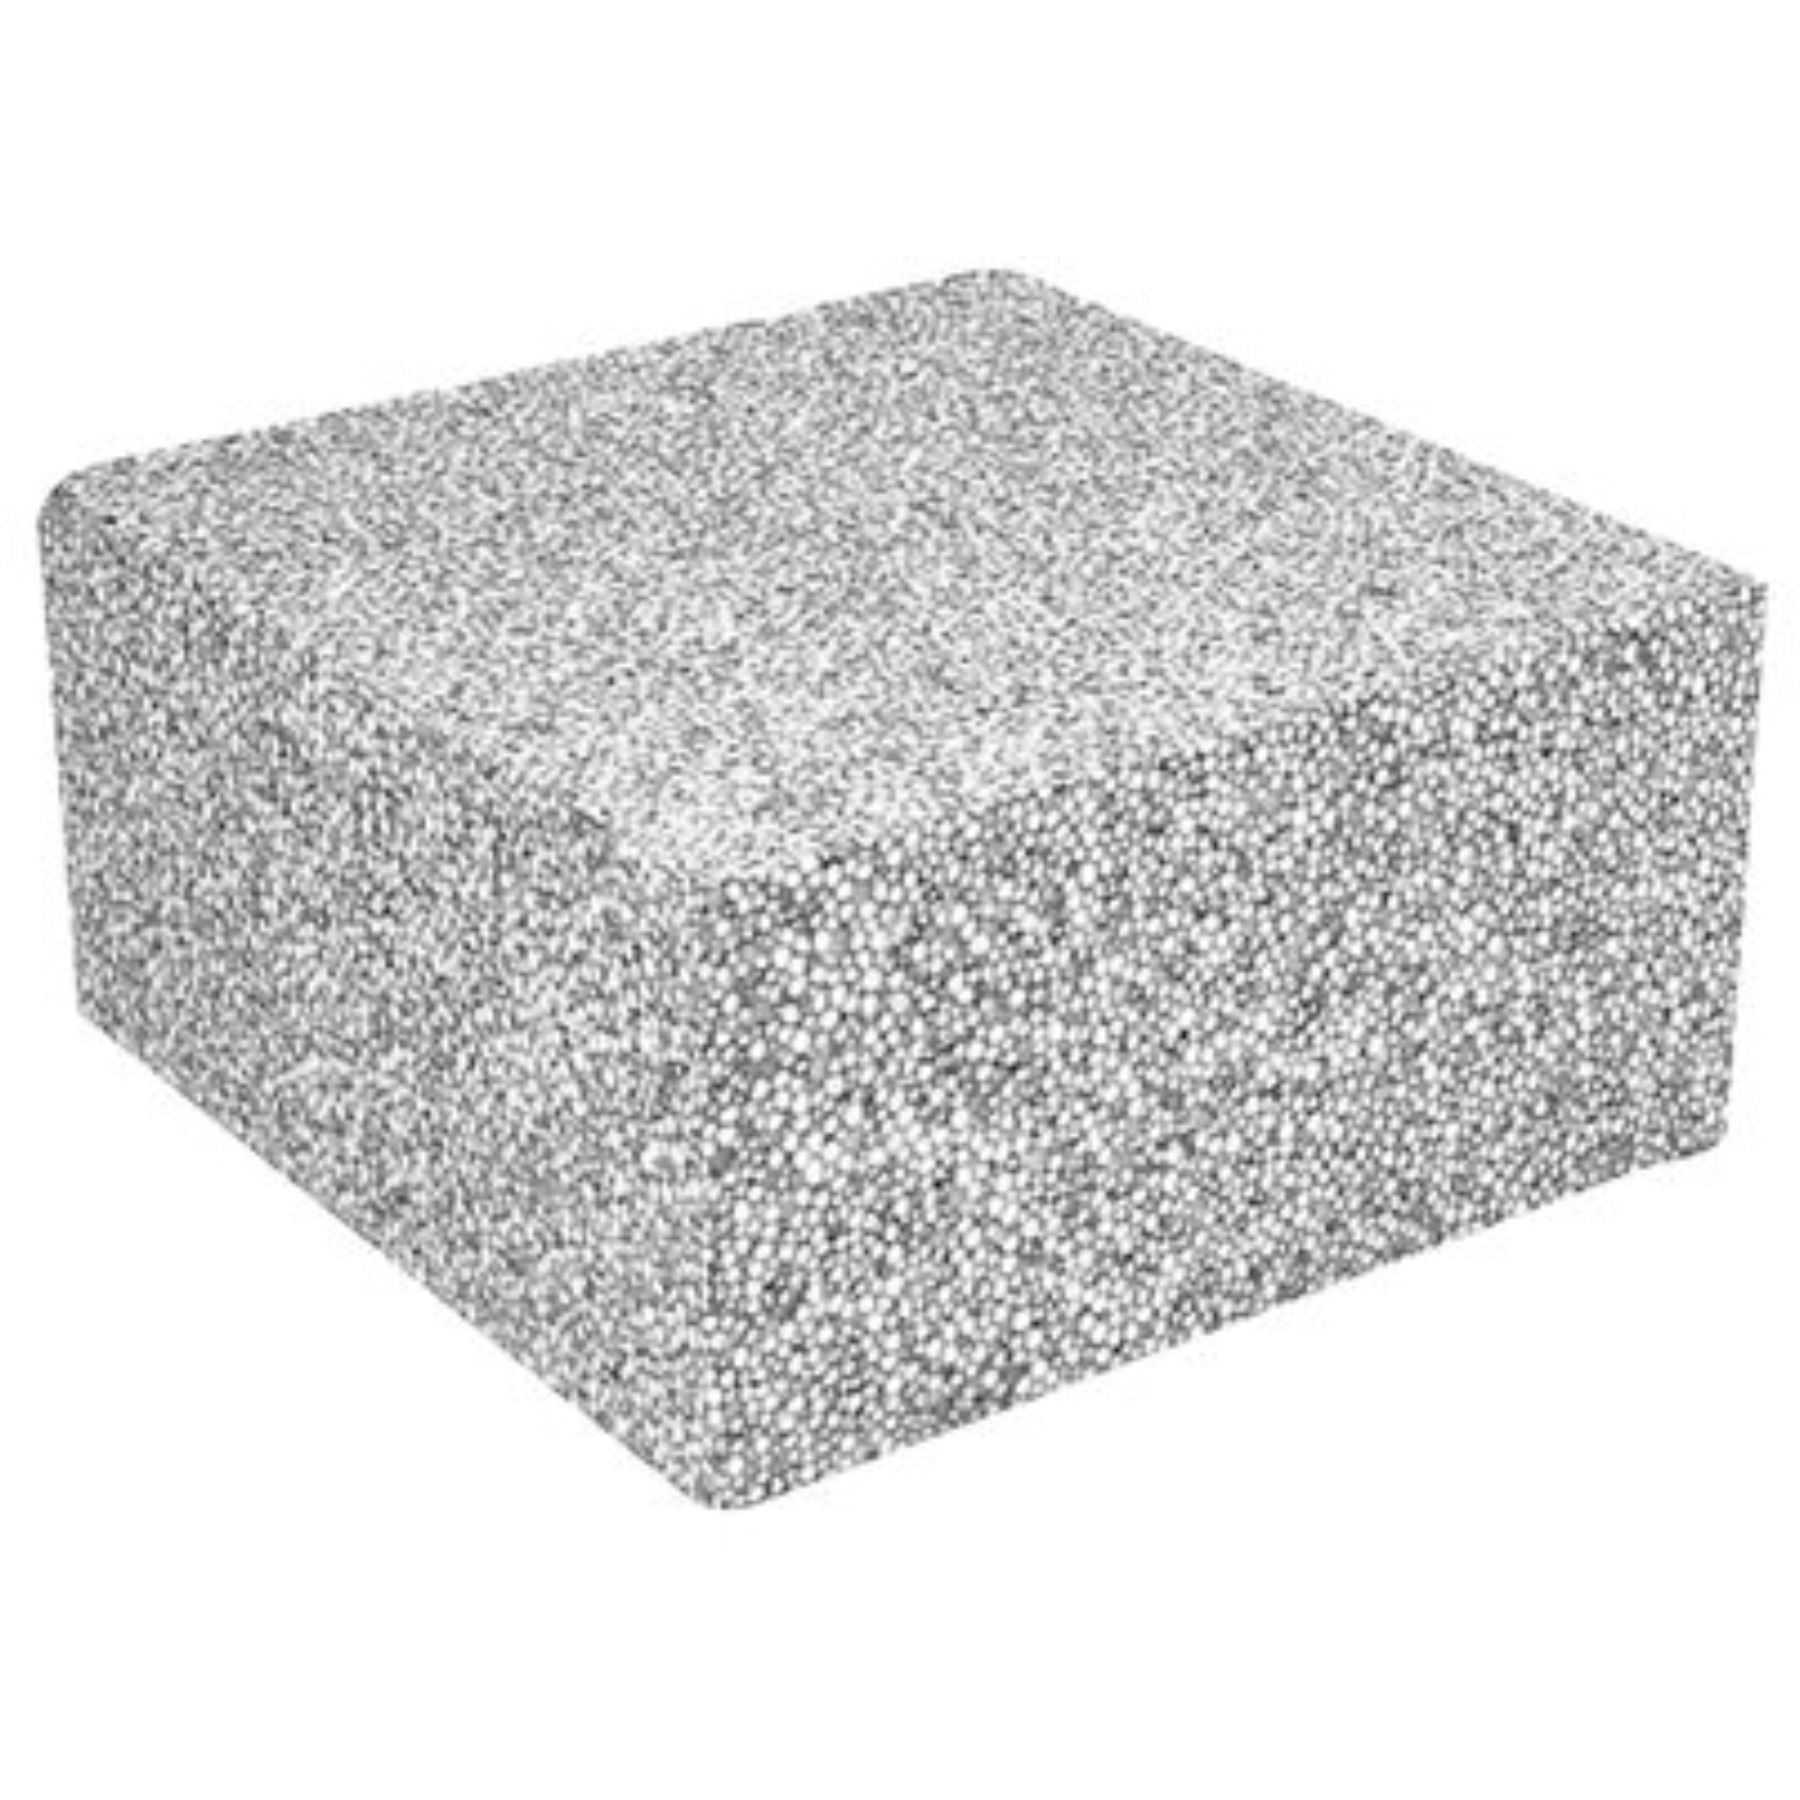 AIR HANDLER FOAM BLOCK 8 IN. X 8 IN. X 4 IN.